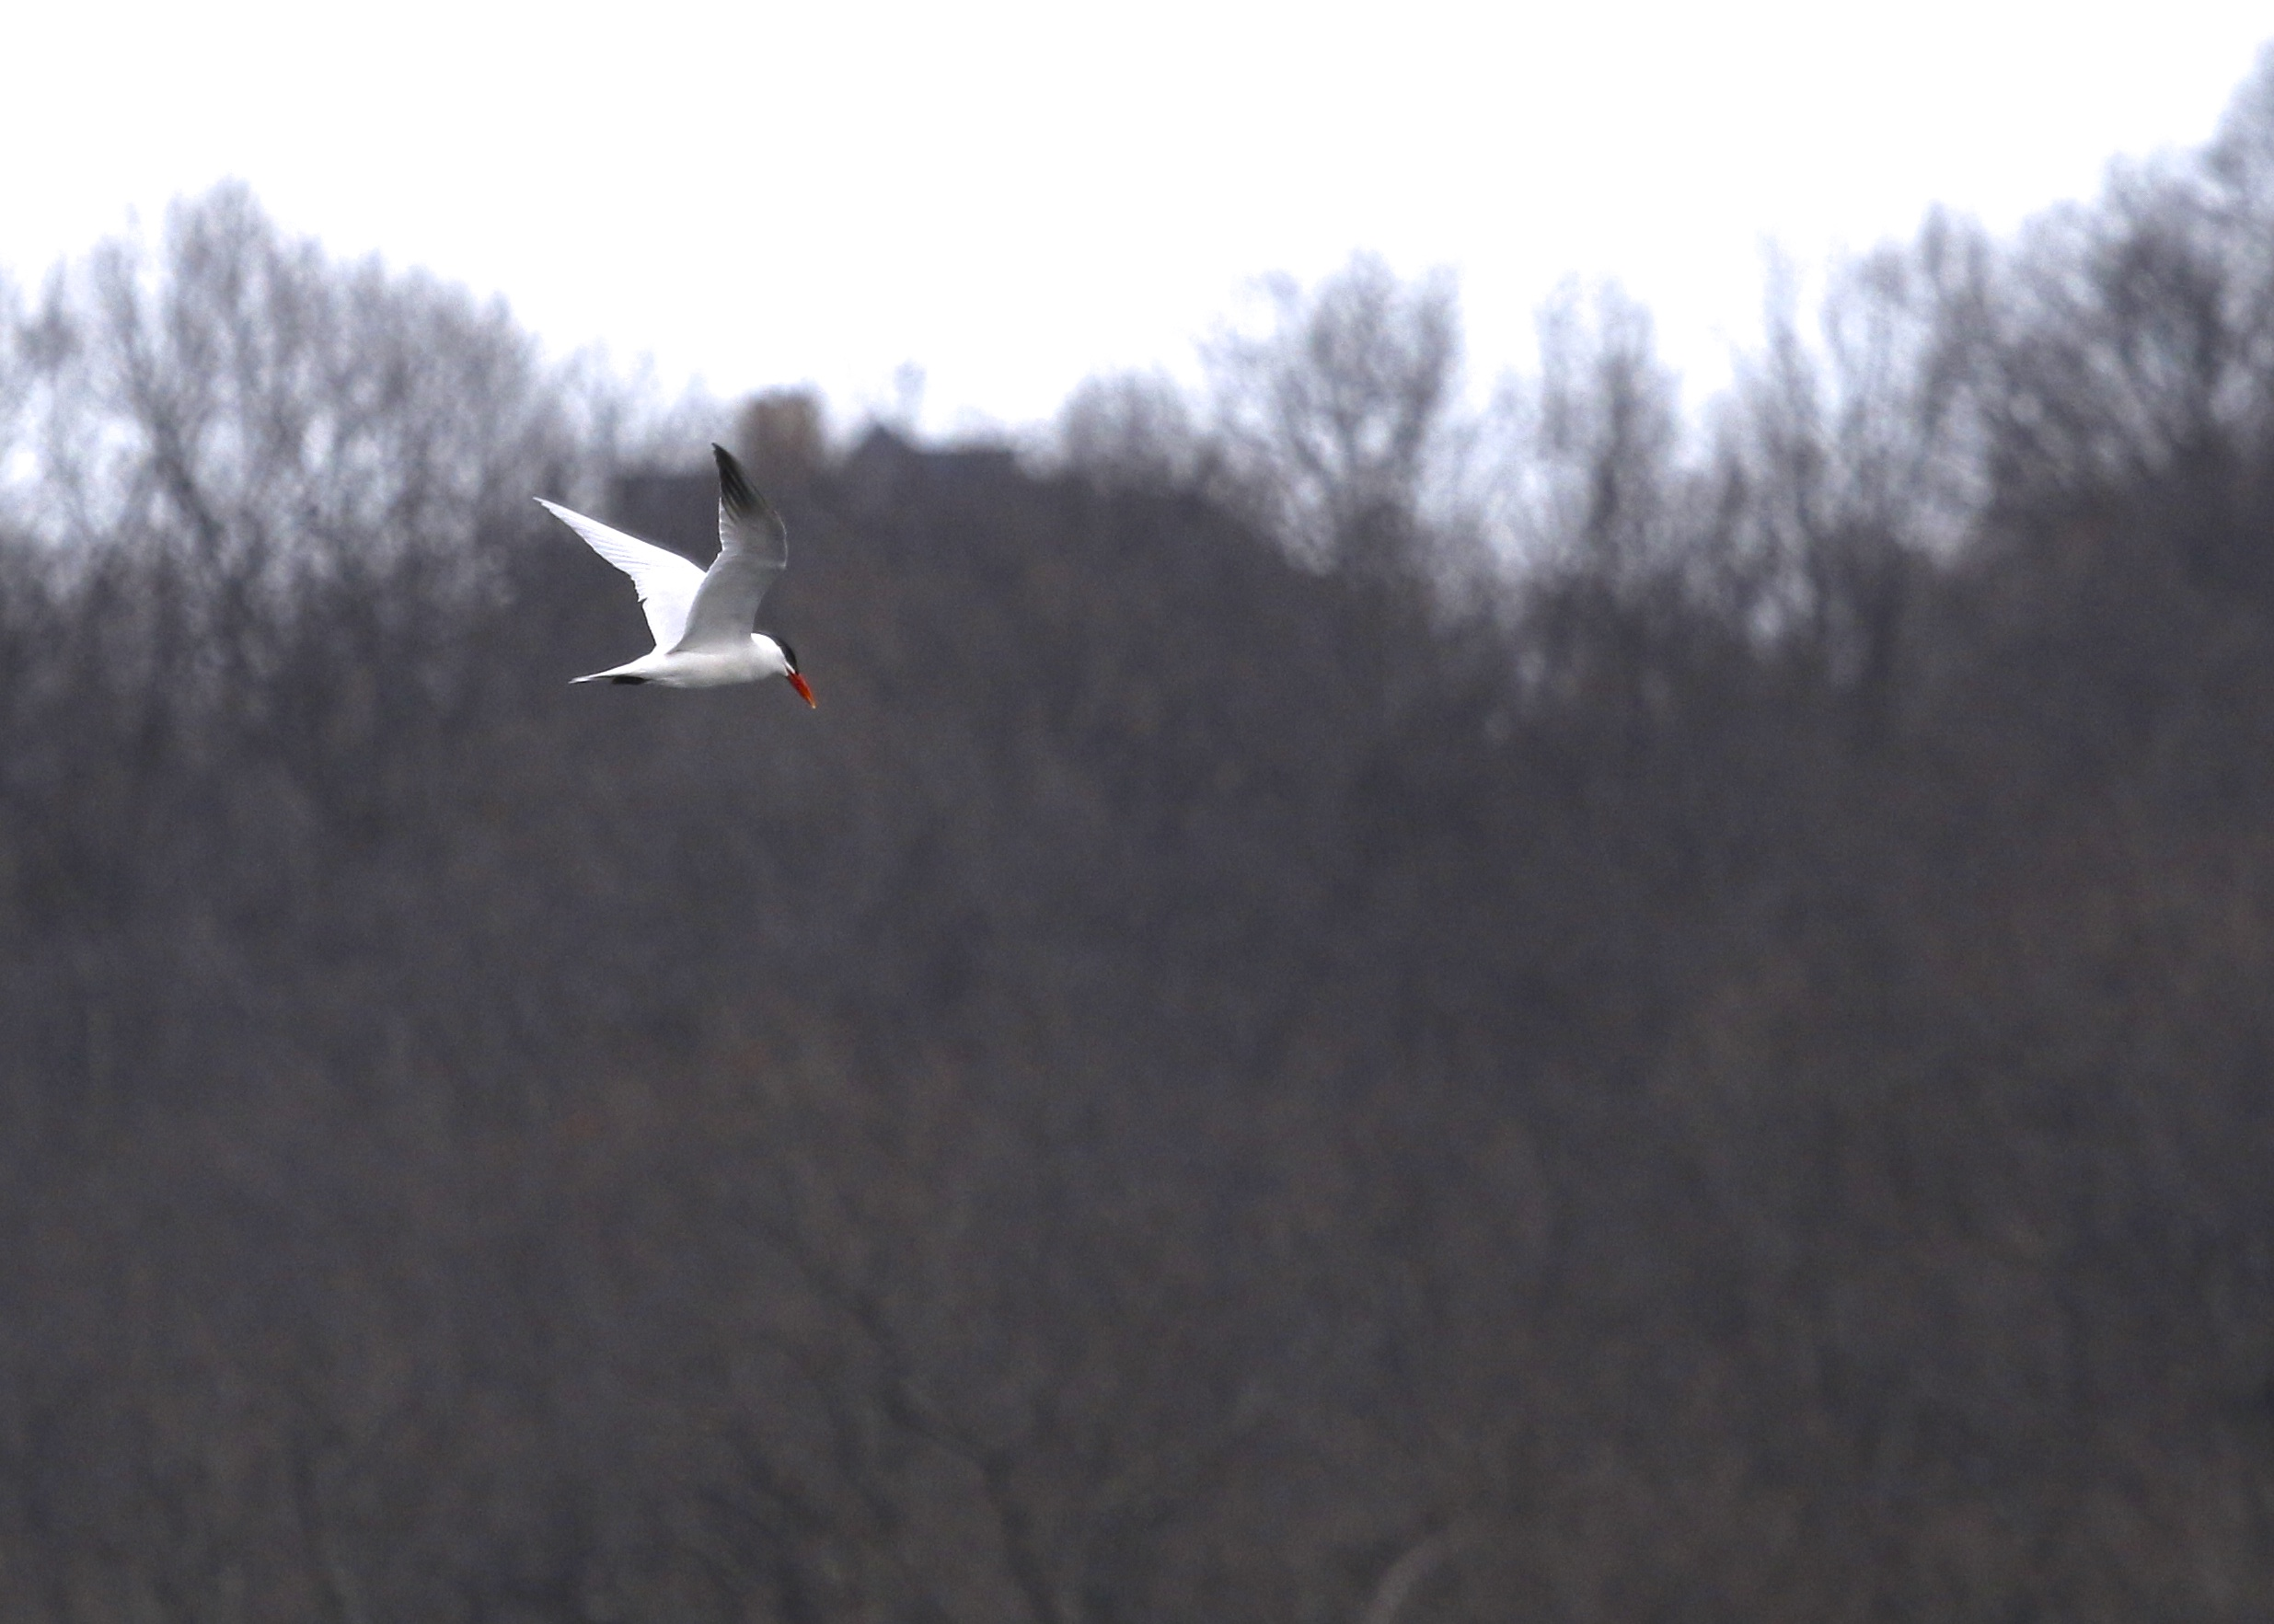 Caspian Tern in flight over Glenmere Lake, 4/3/14.